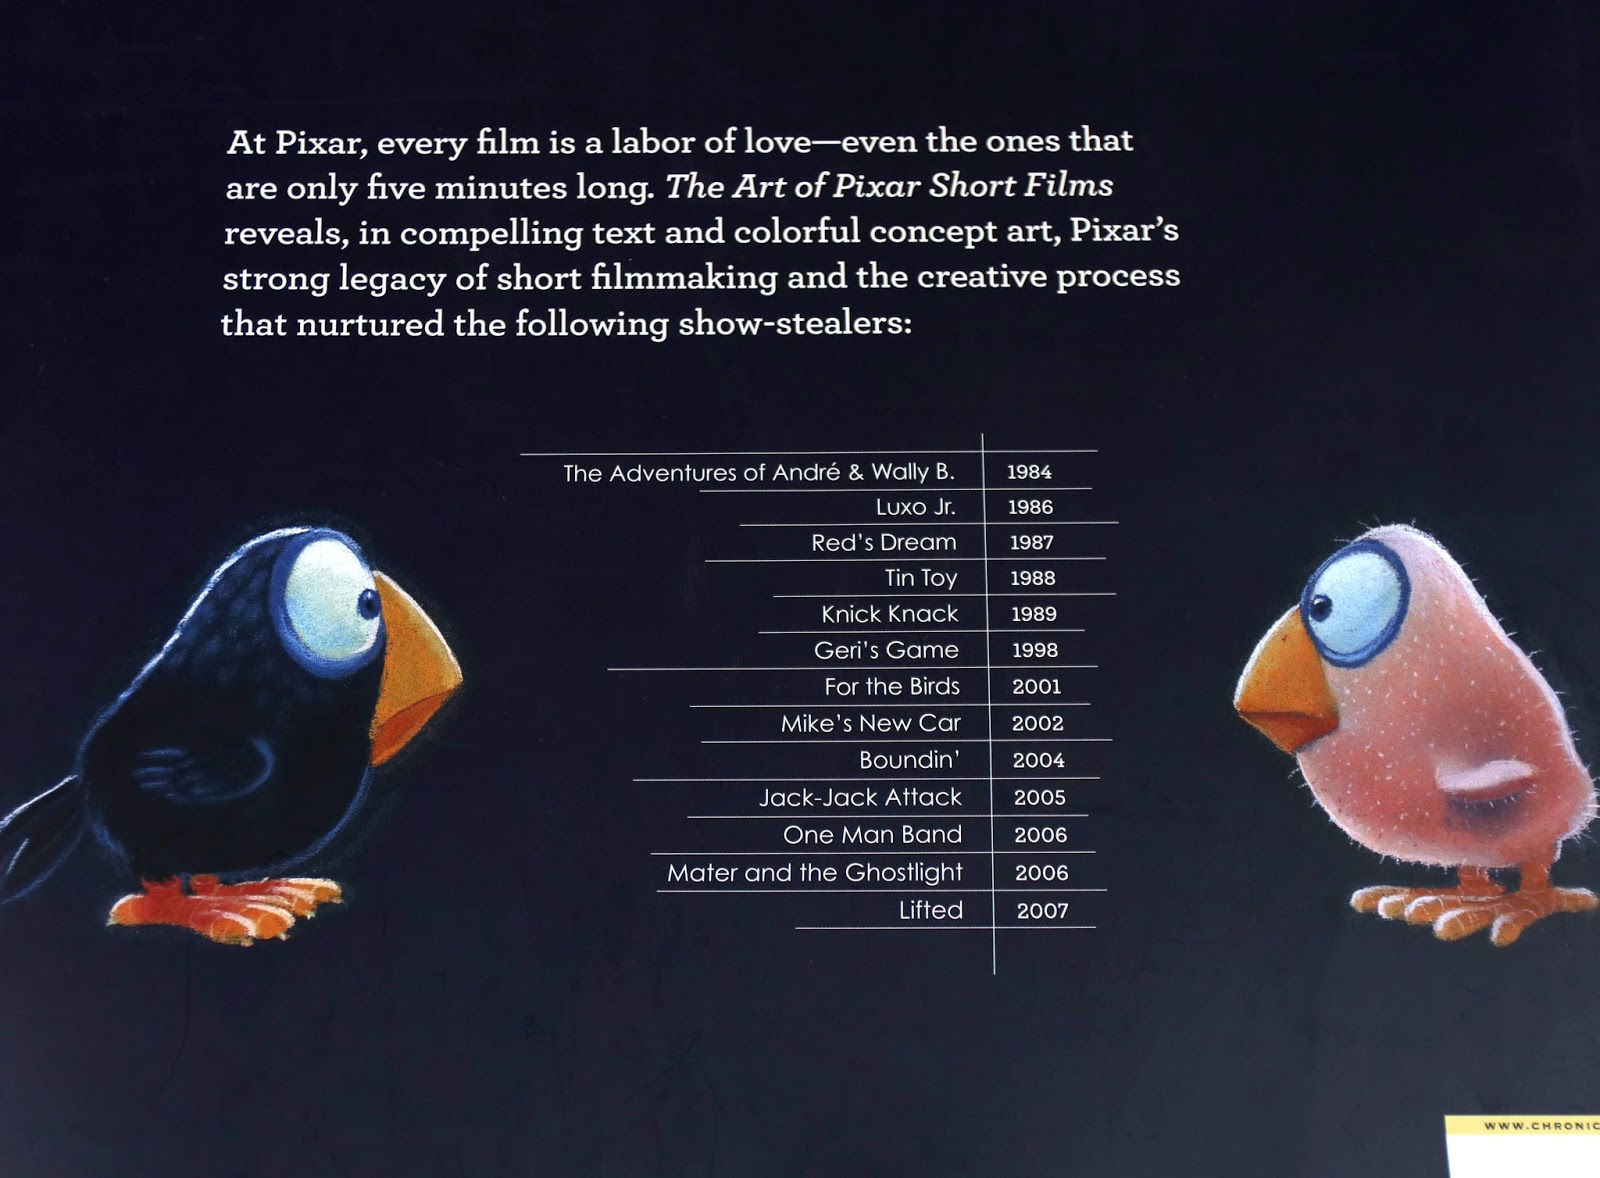 the art of pixar short films book review